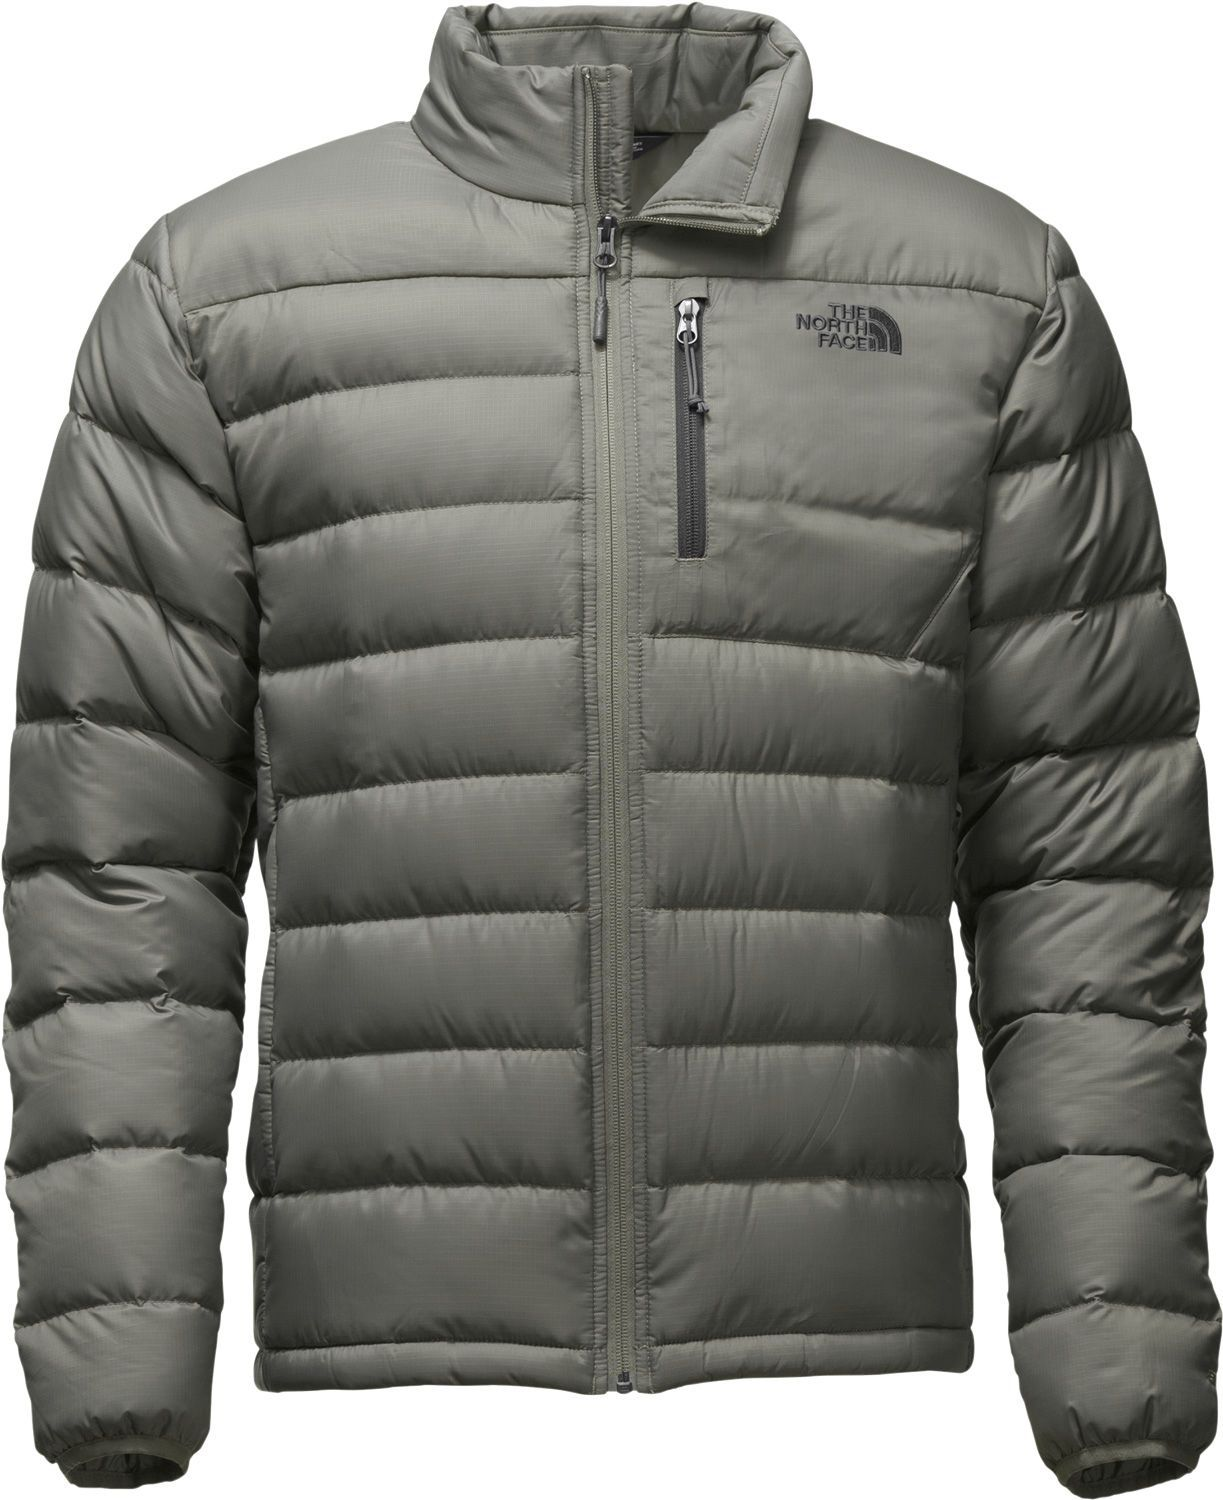 818f3f5c9 The North Face Men's Aconcagua Down Jacket | Products | Jackets ...